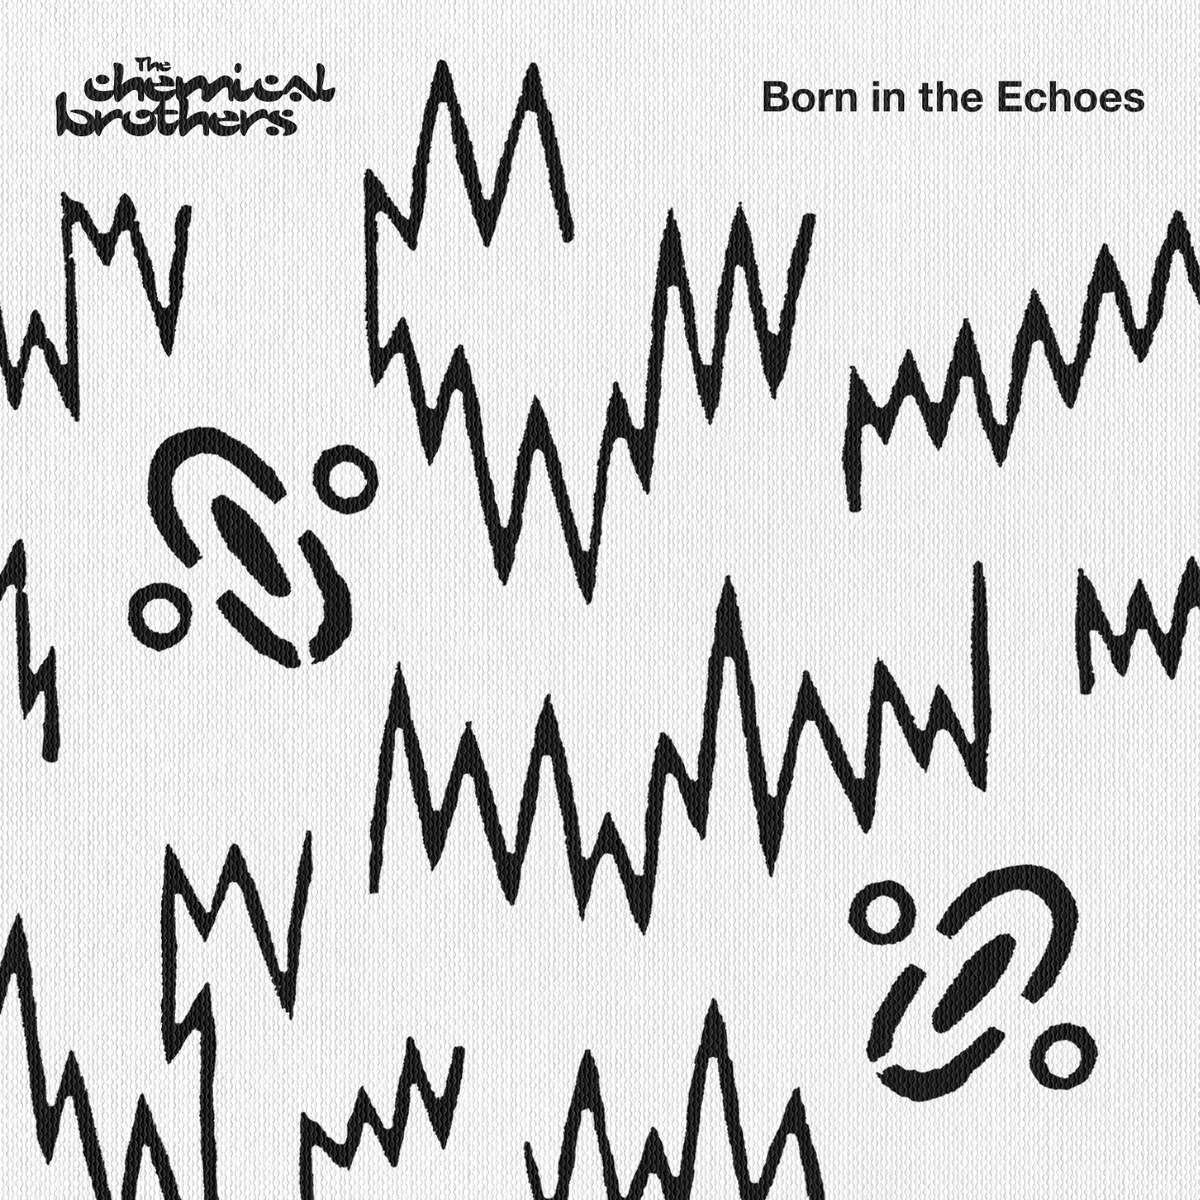 Musik-Tipp: The Chemical Brothers – Go